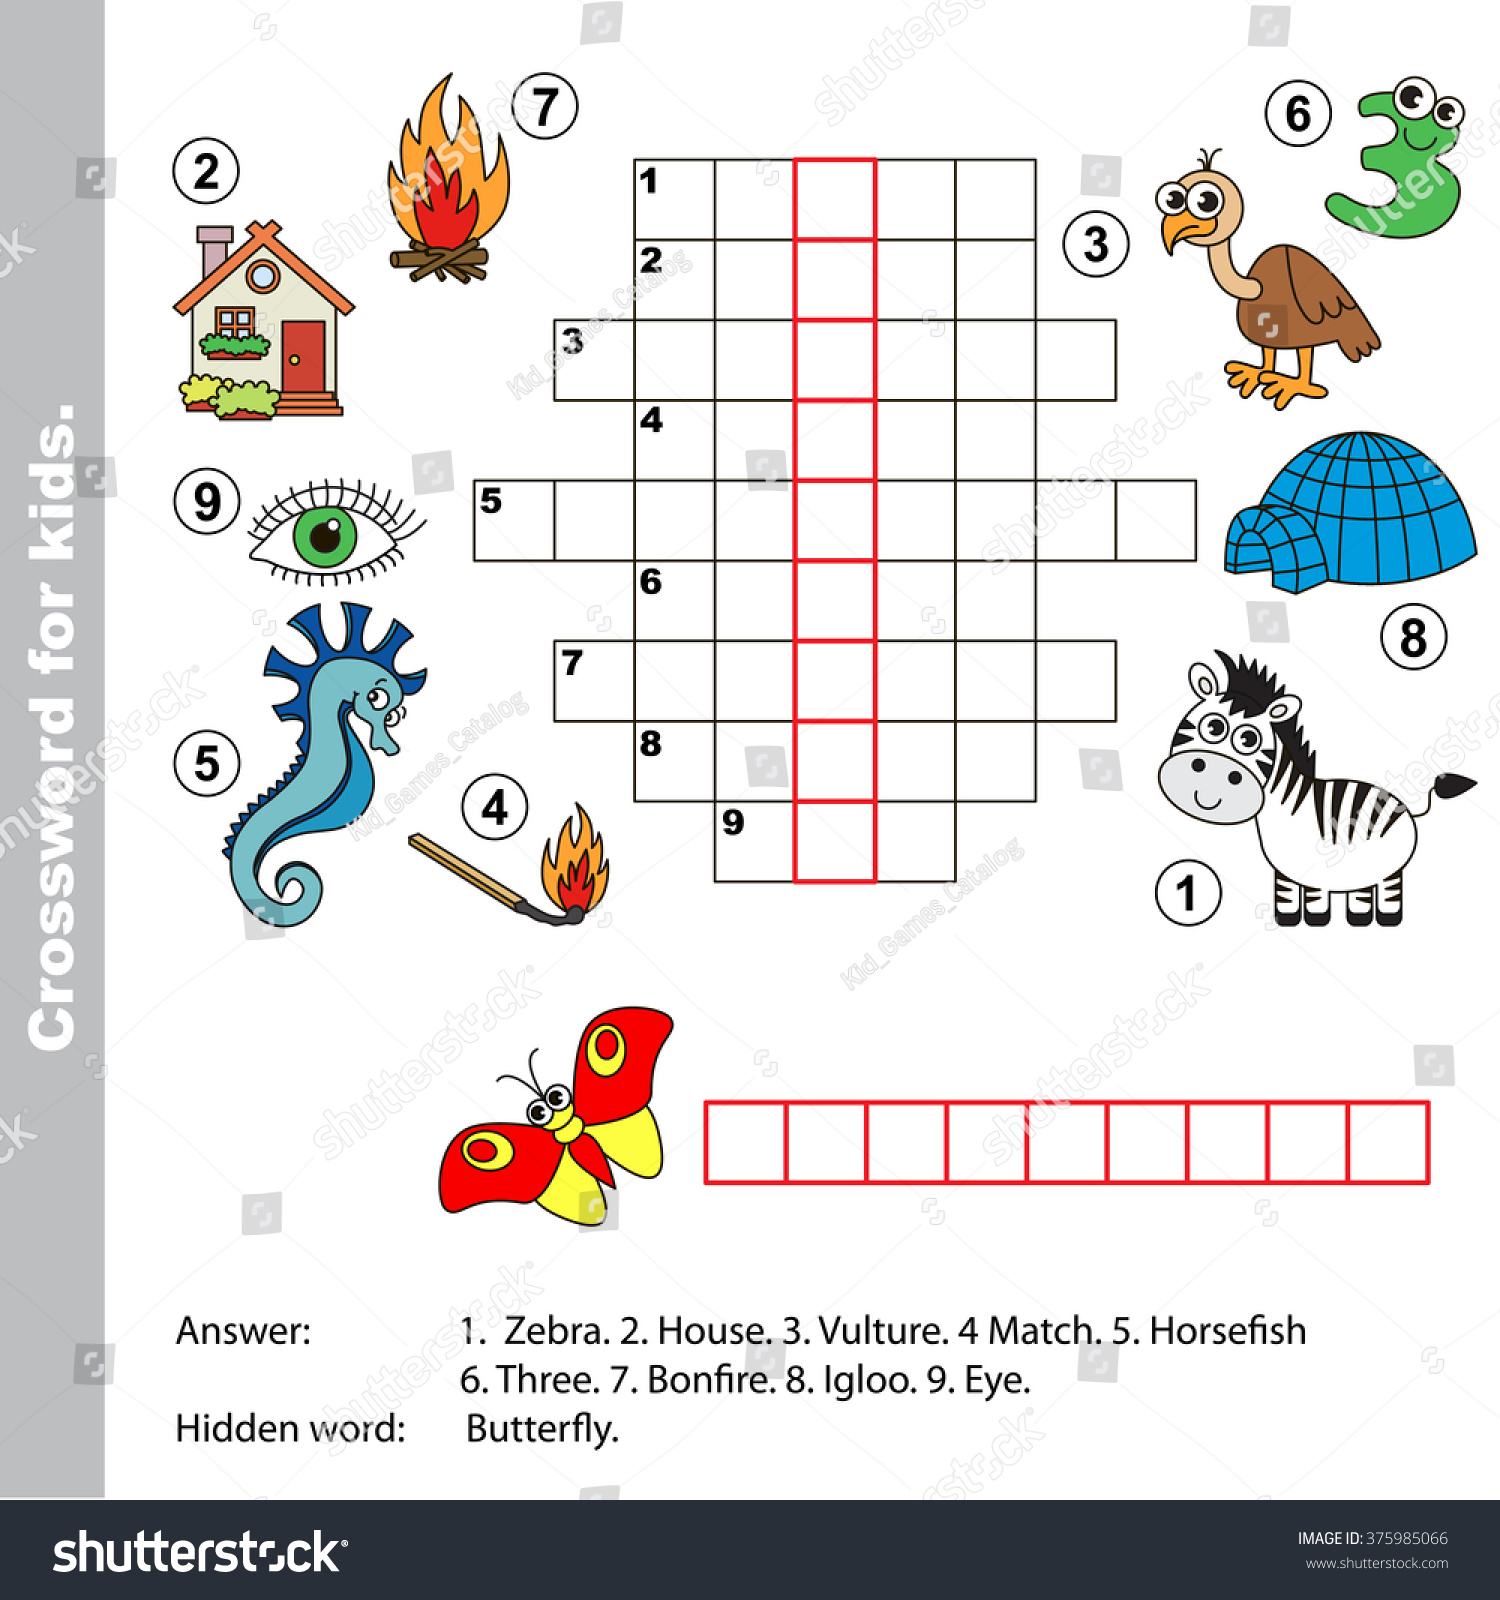 Butterfly Crossword Worksheet